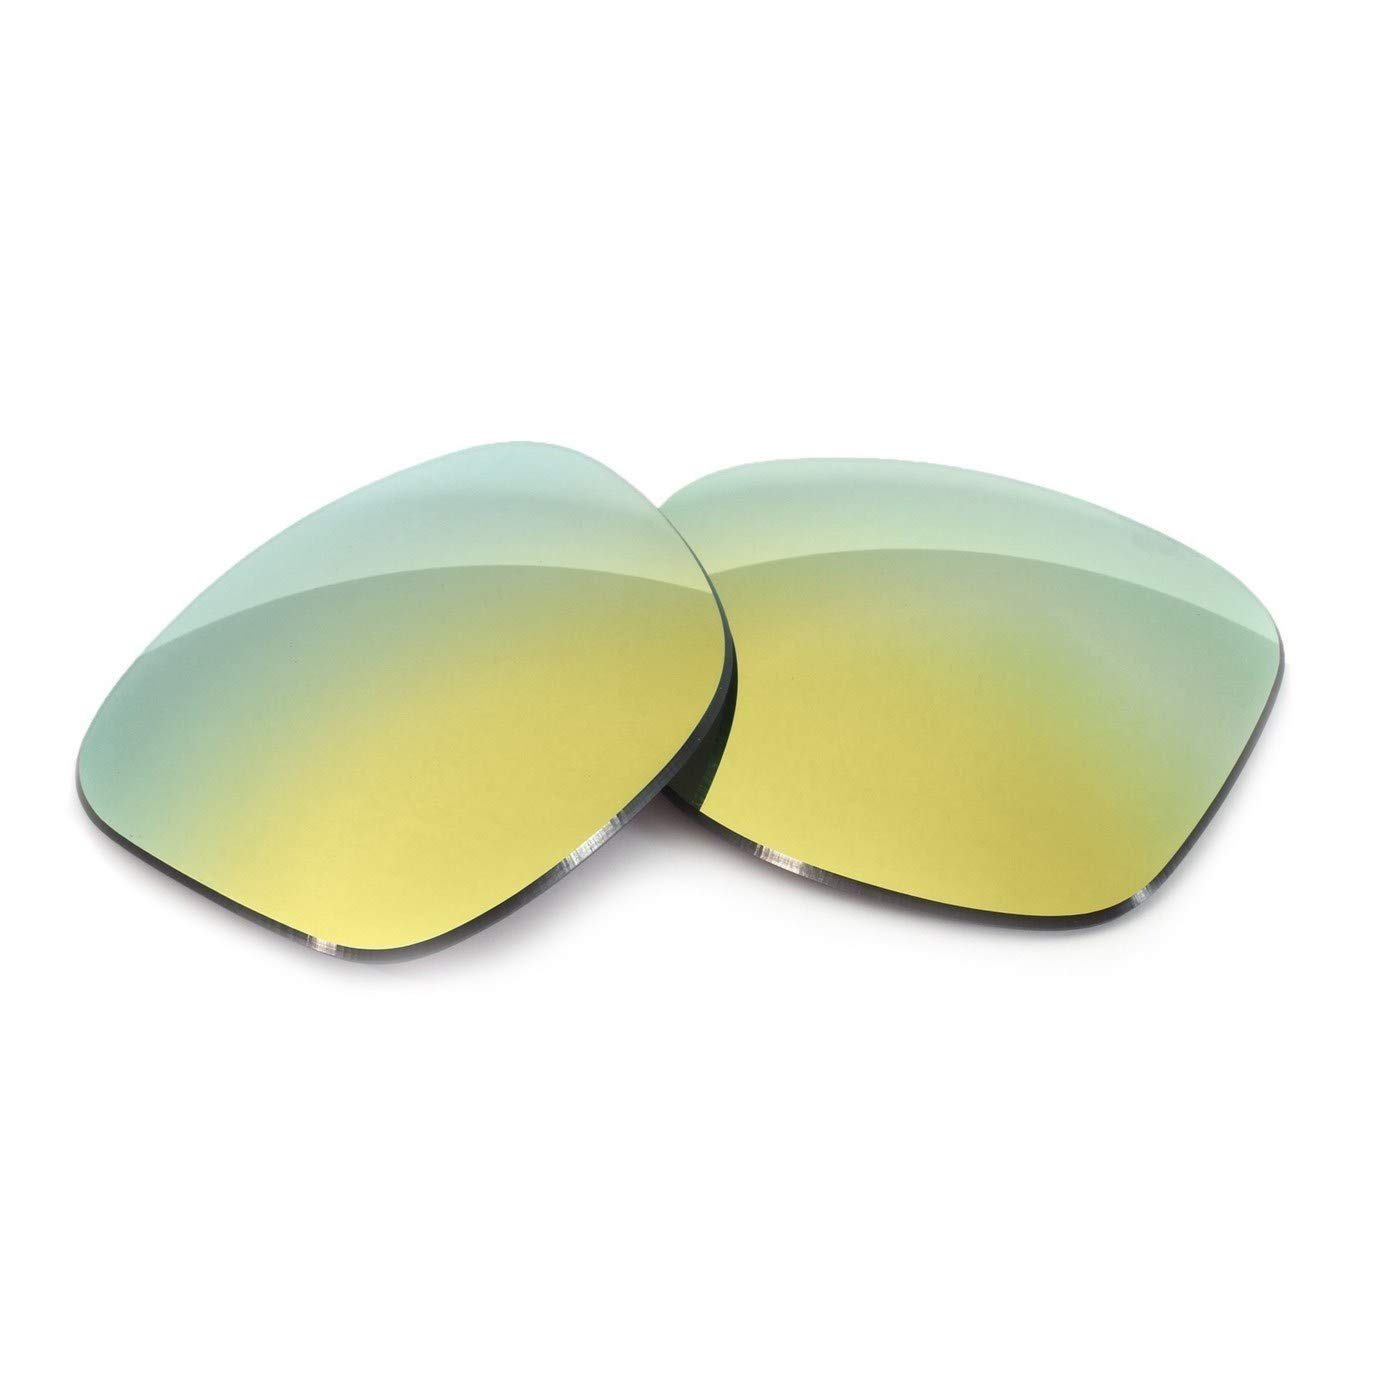 Fuse Lenses Polarized Replacement Lenses for Filtrate Brinley